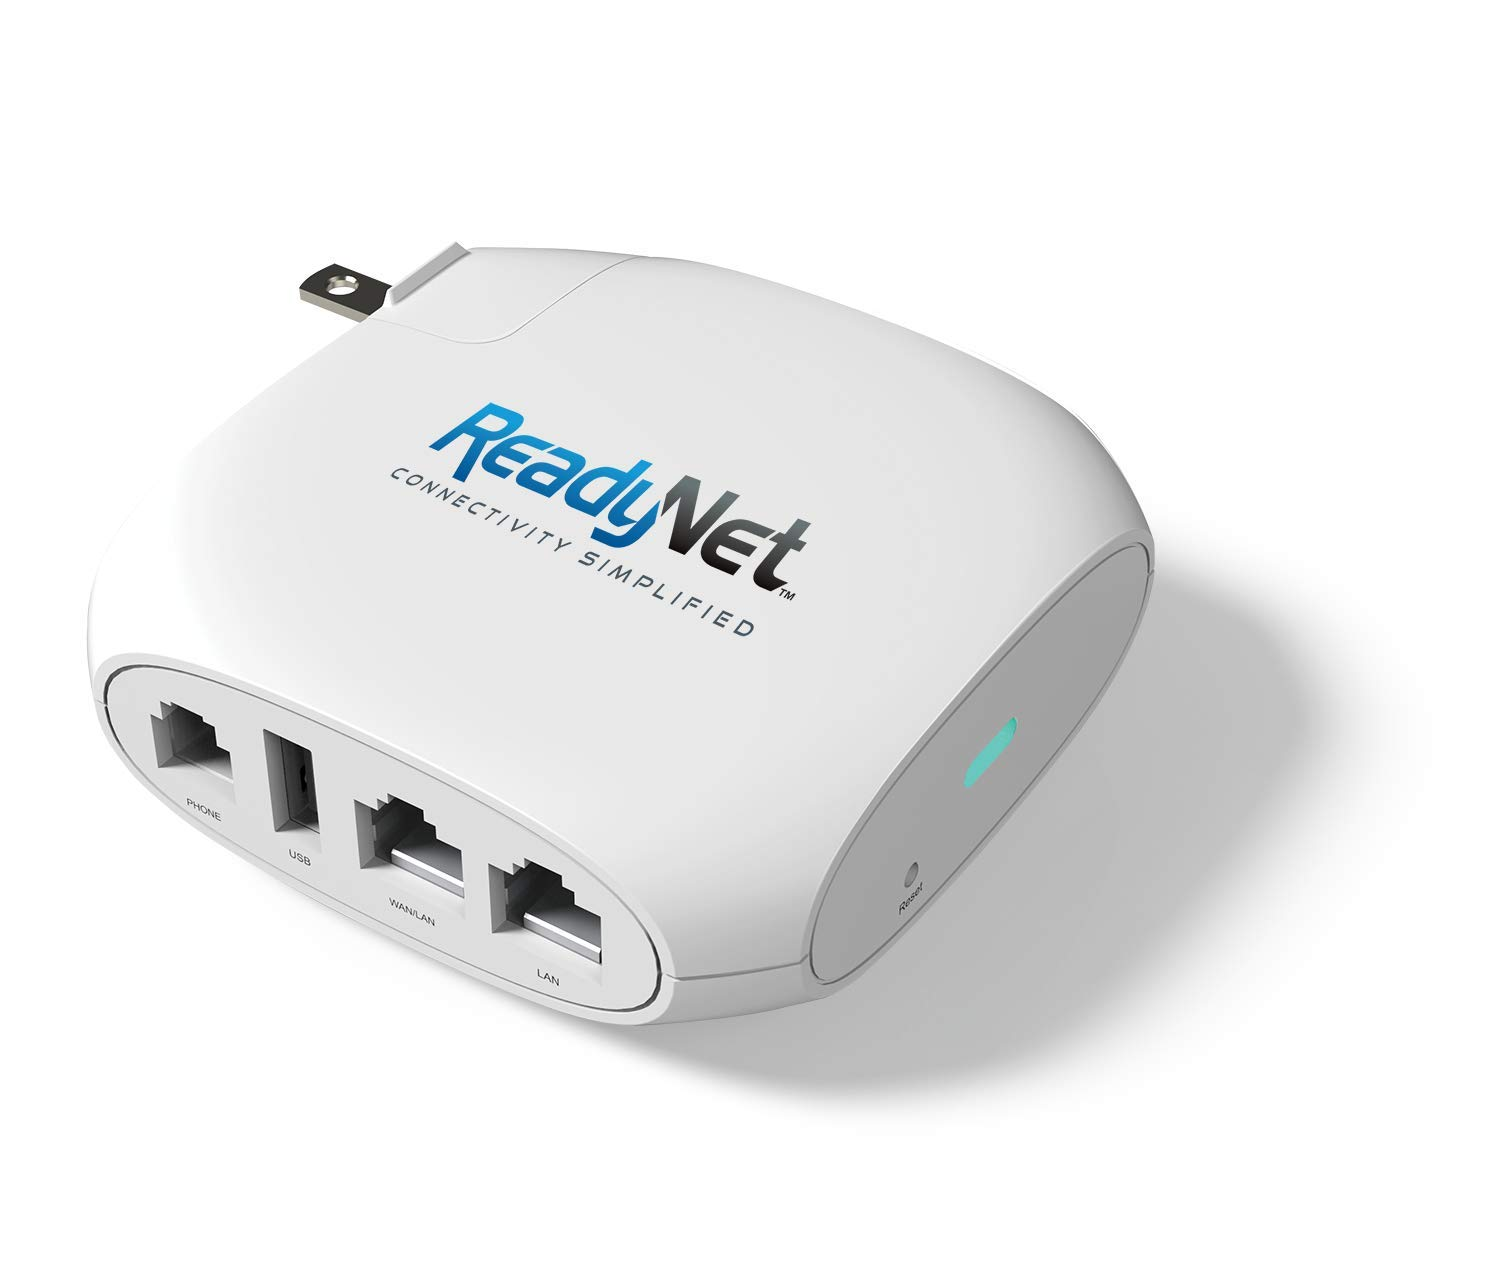 ReadyNet Wireless VoIP Wi-Fi Router, 802.11n, 1 FXS port for VoIP, Fast Ethernet, TR-069 Remote Management (QX300) by ReadyNet